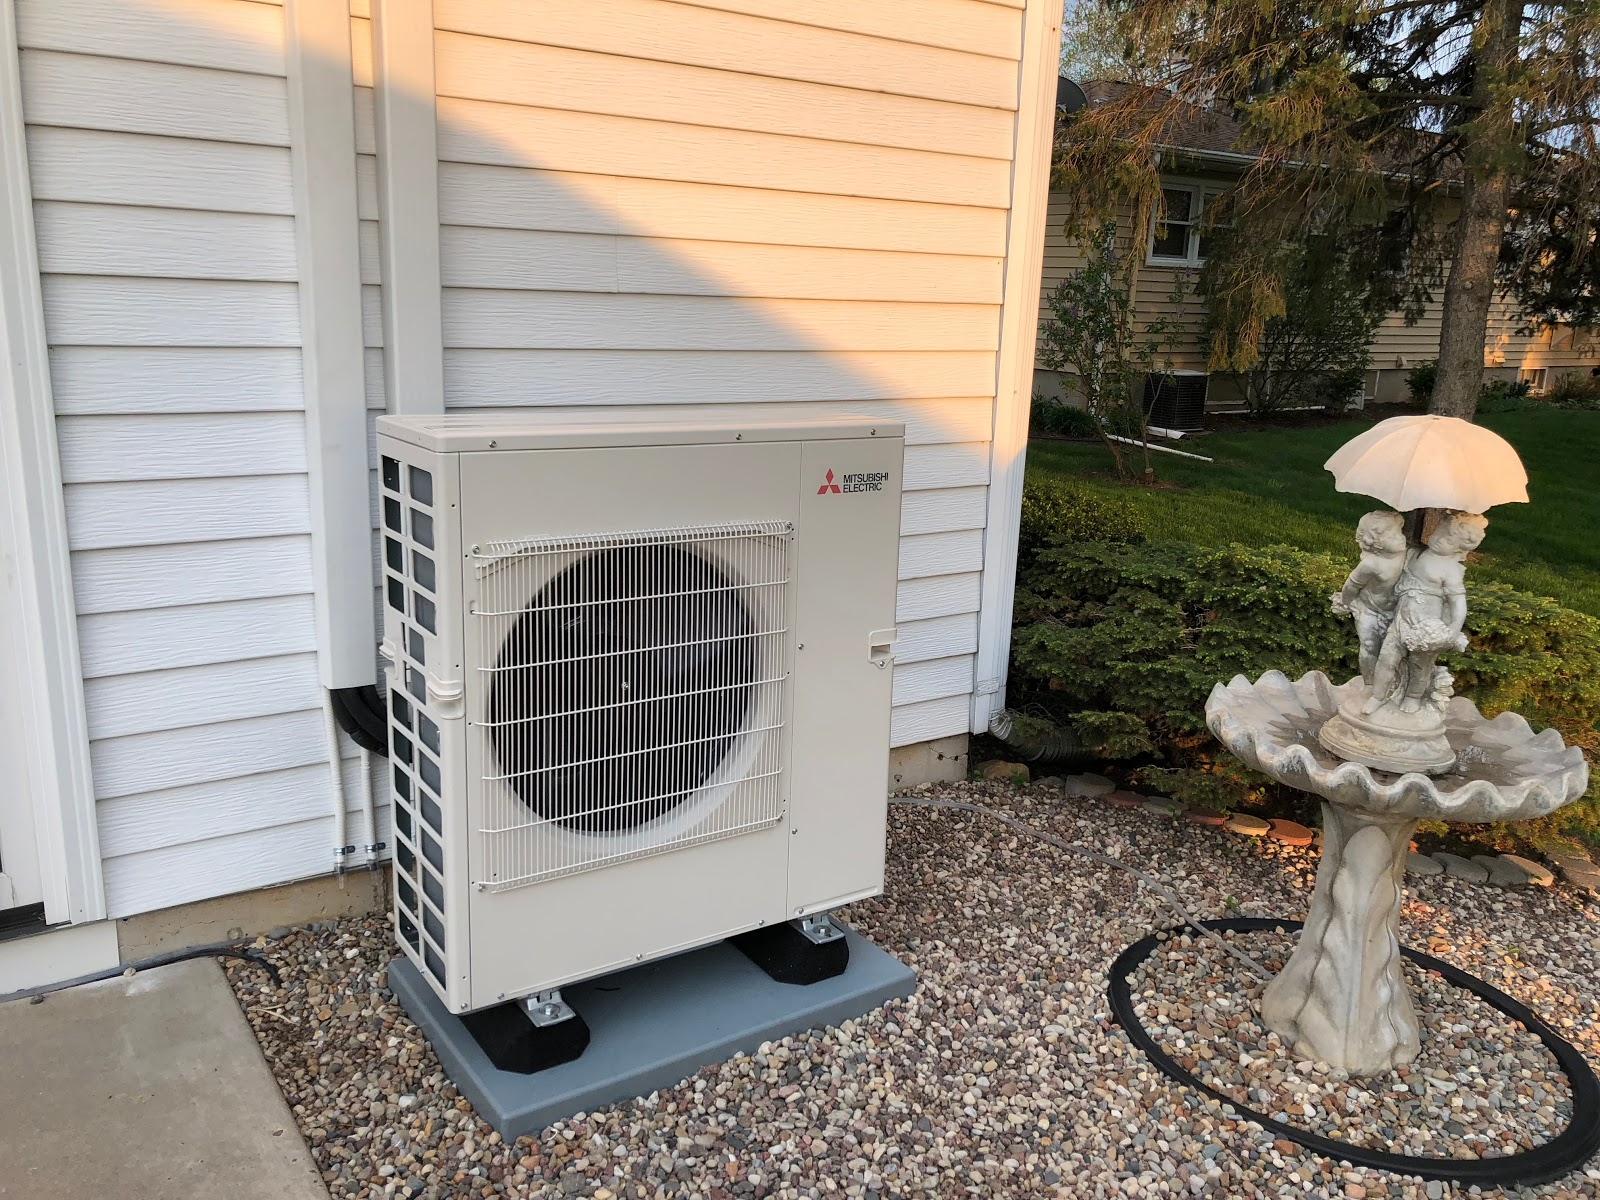 Example of an outdoor heat pump condenser installed outside a split level home.